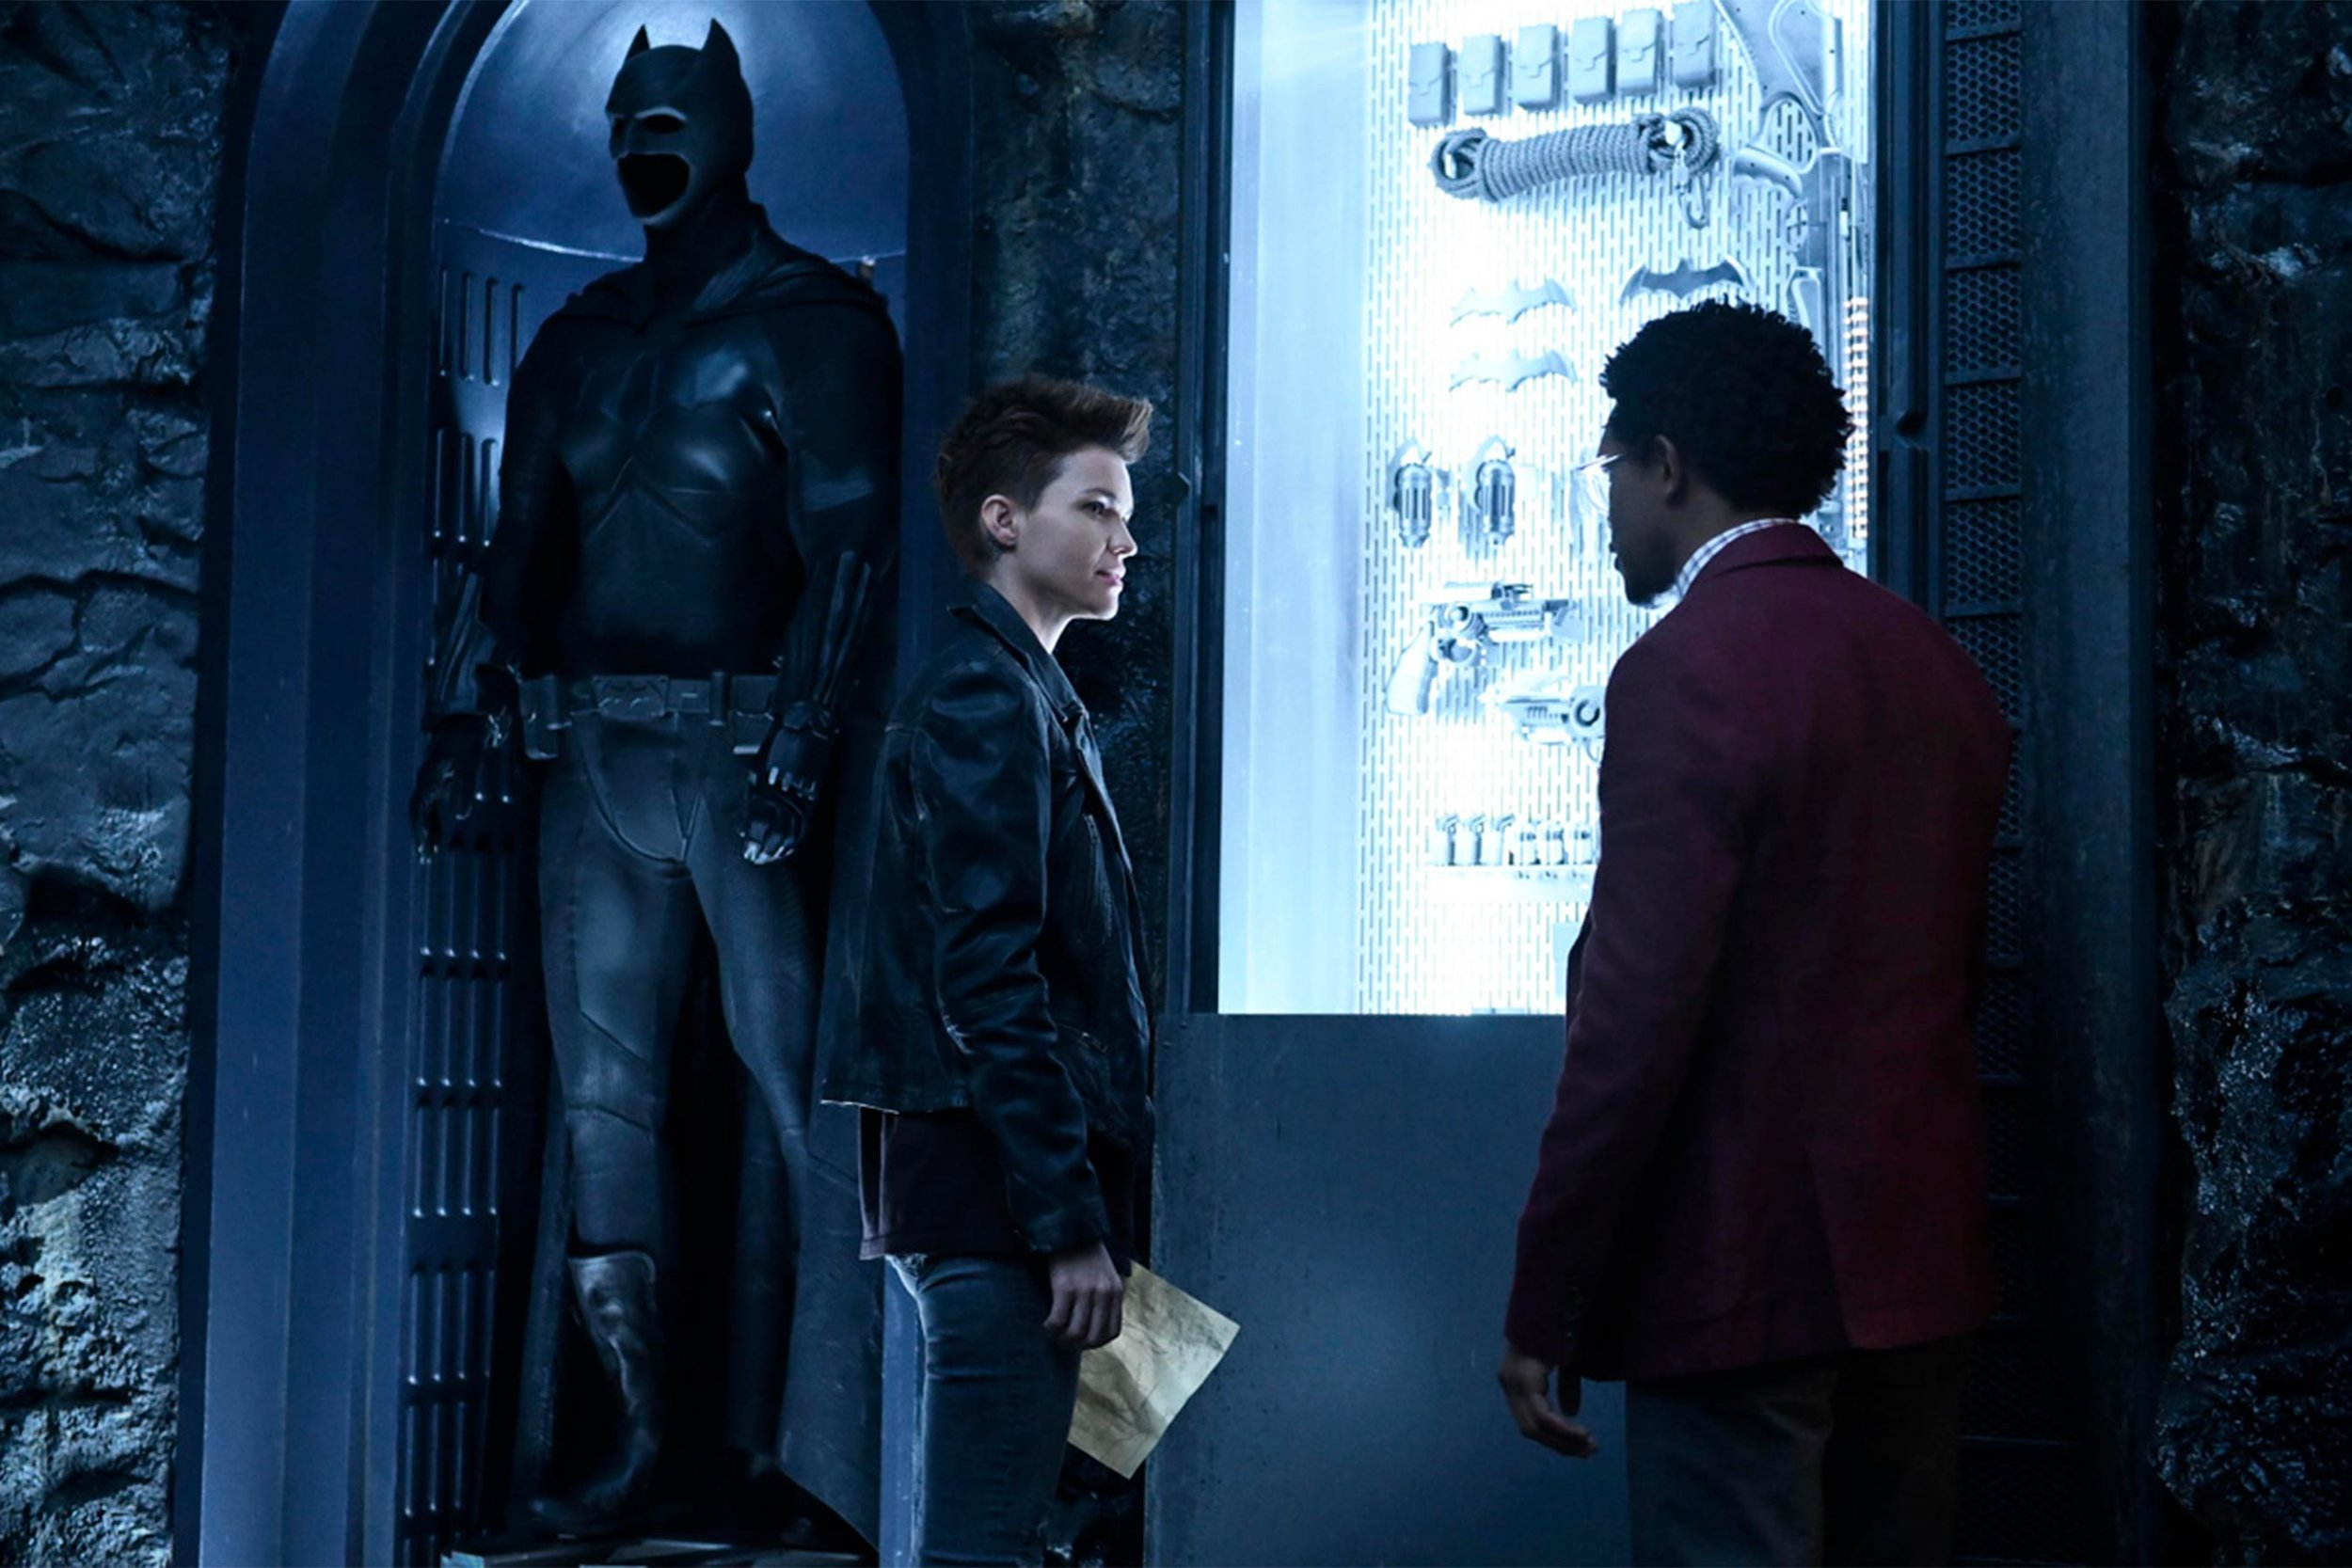 new-batwoman-photo-features-first-look-at-arrowverses-take-on-batmans-suit